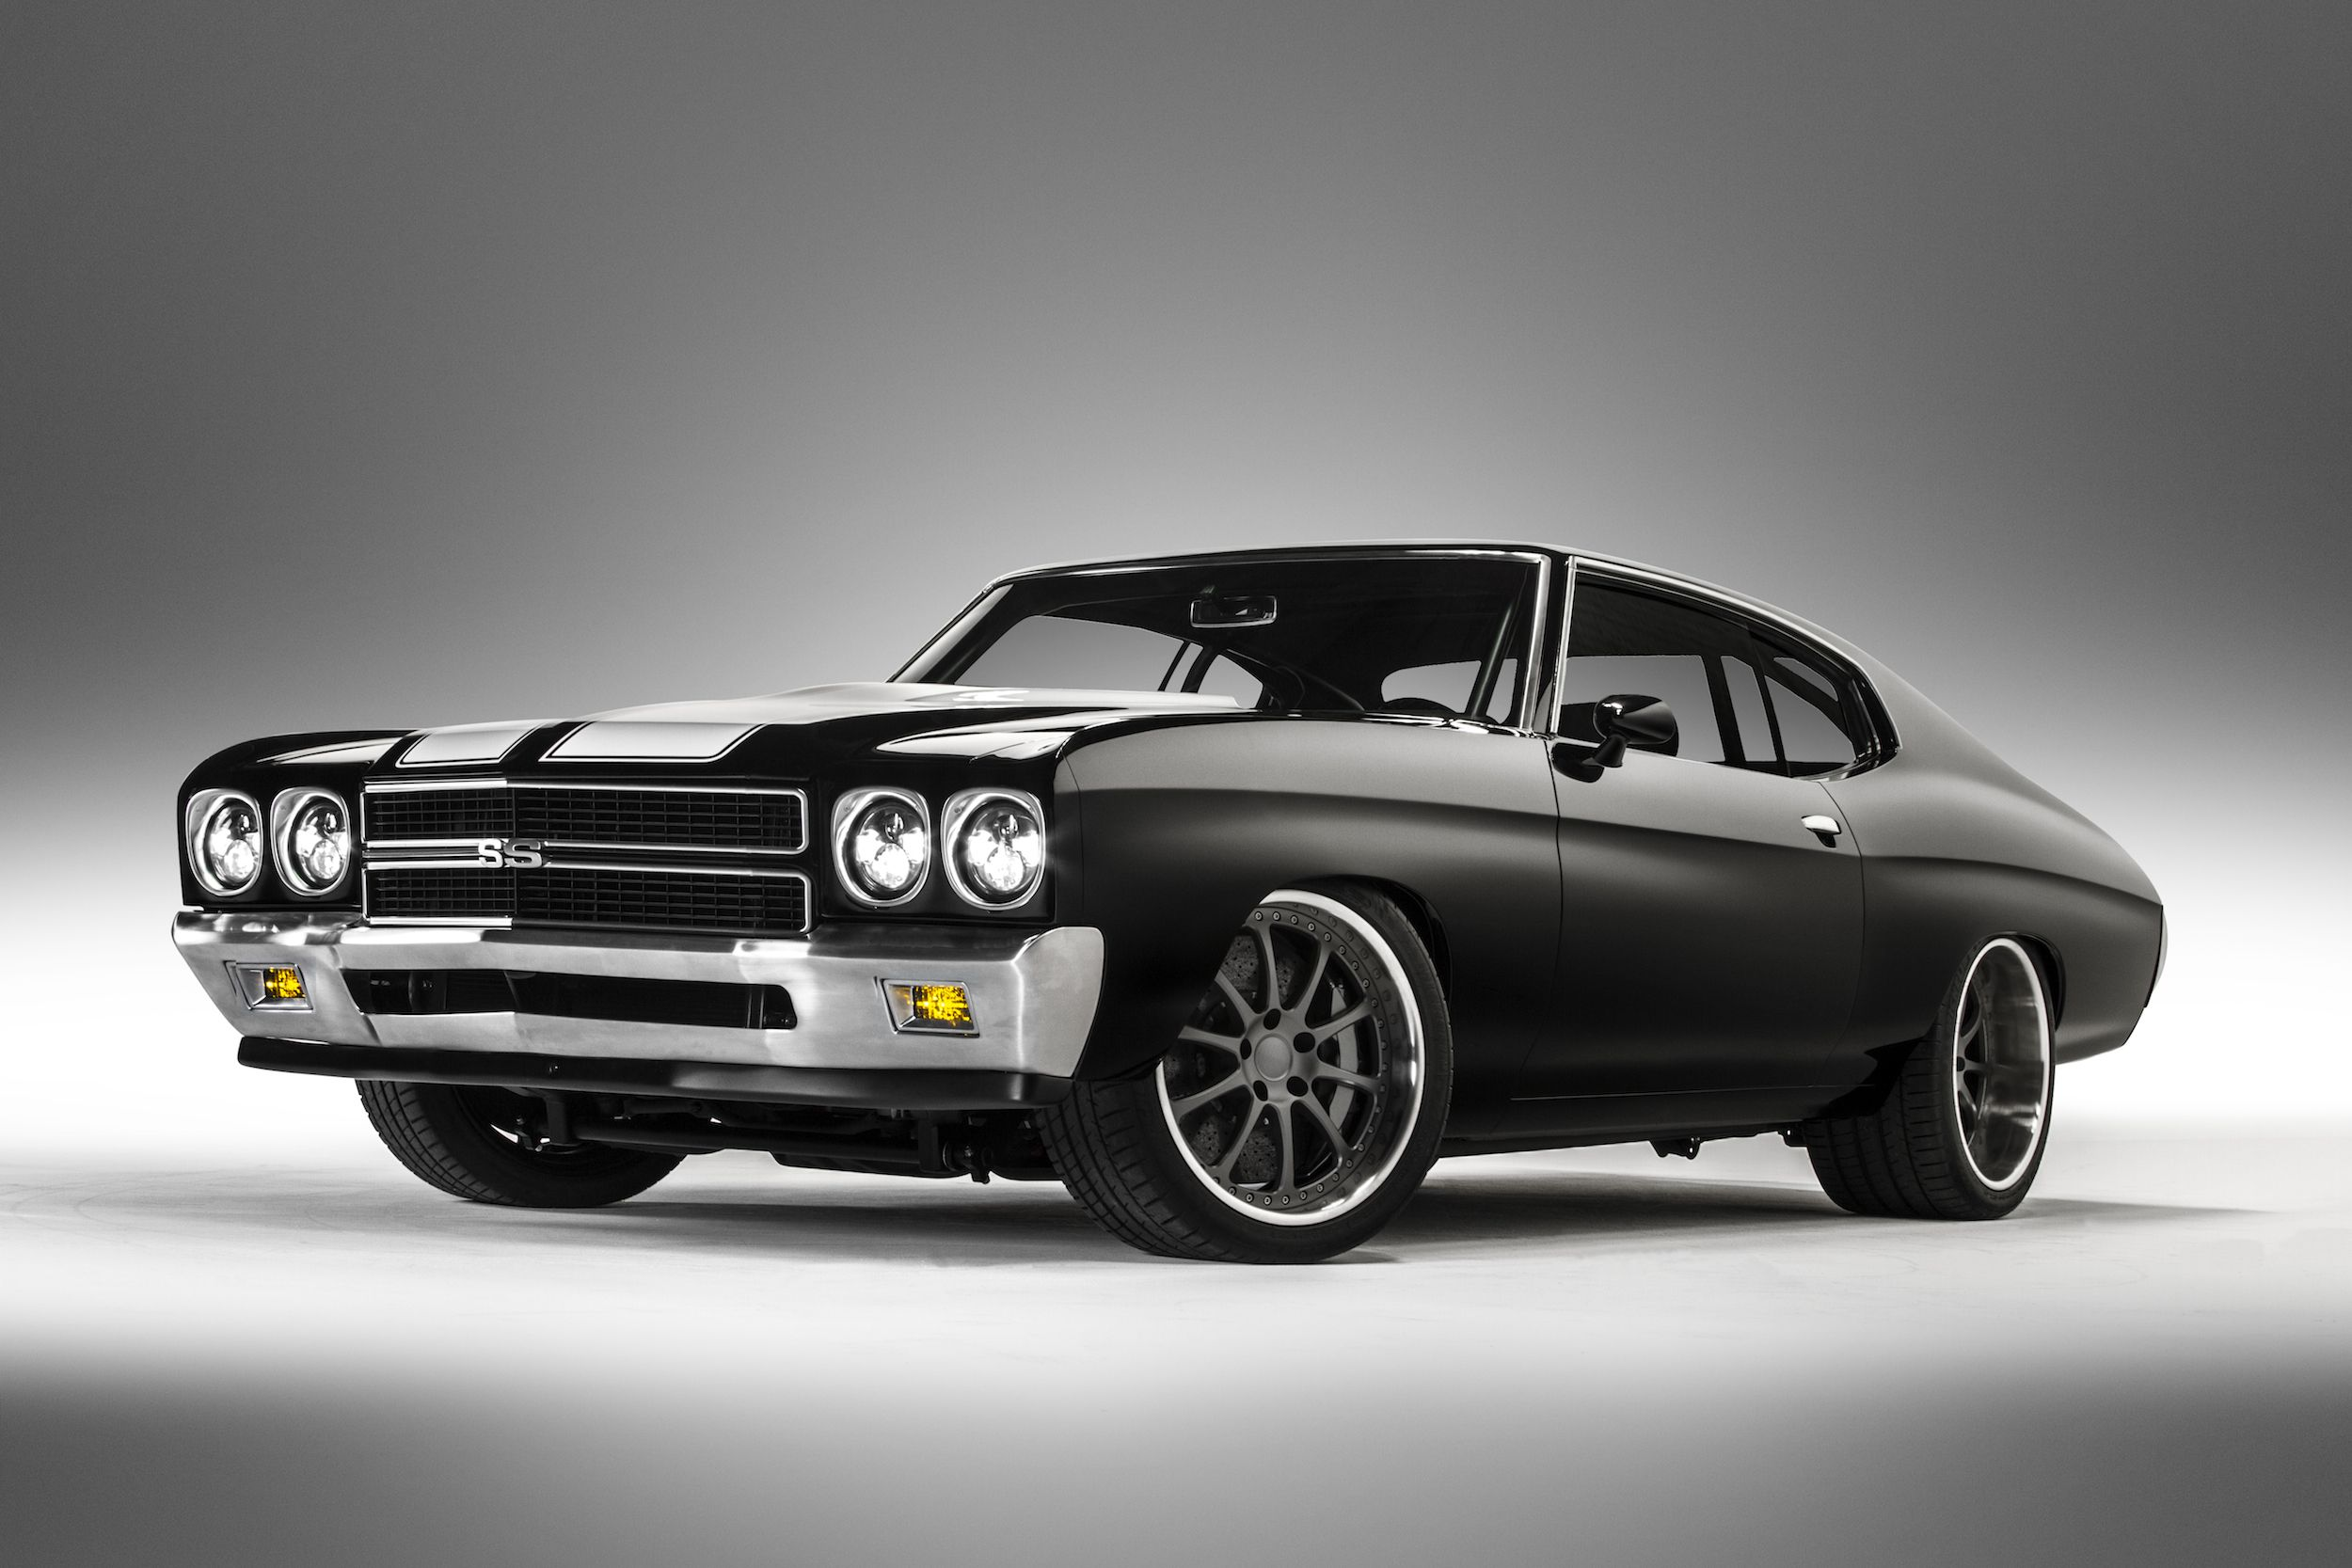 Moe s incredible 70 chevelle ss by detroit speed is powered by a 1000